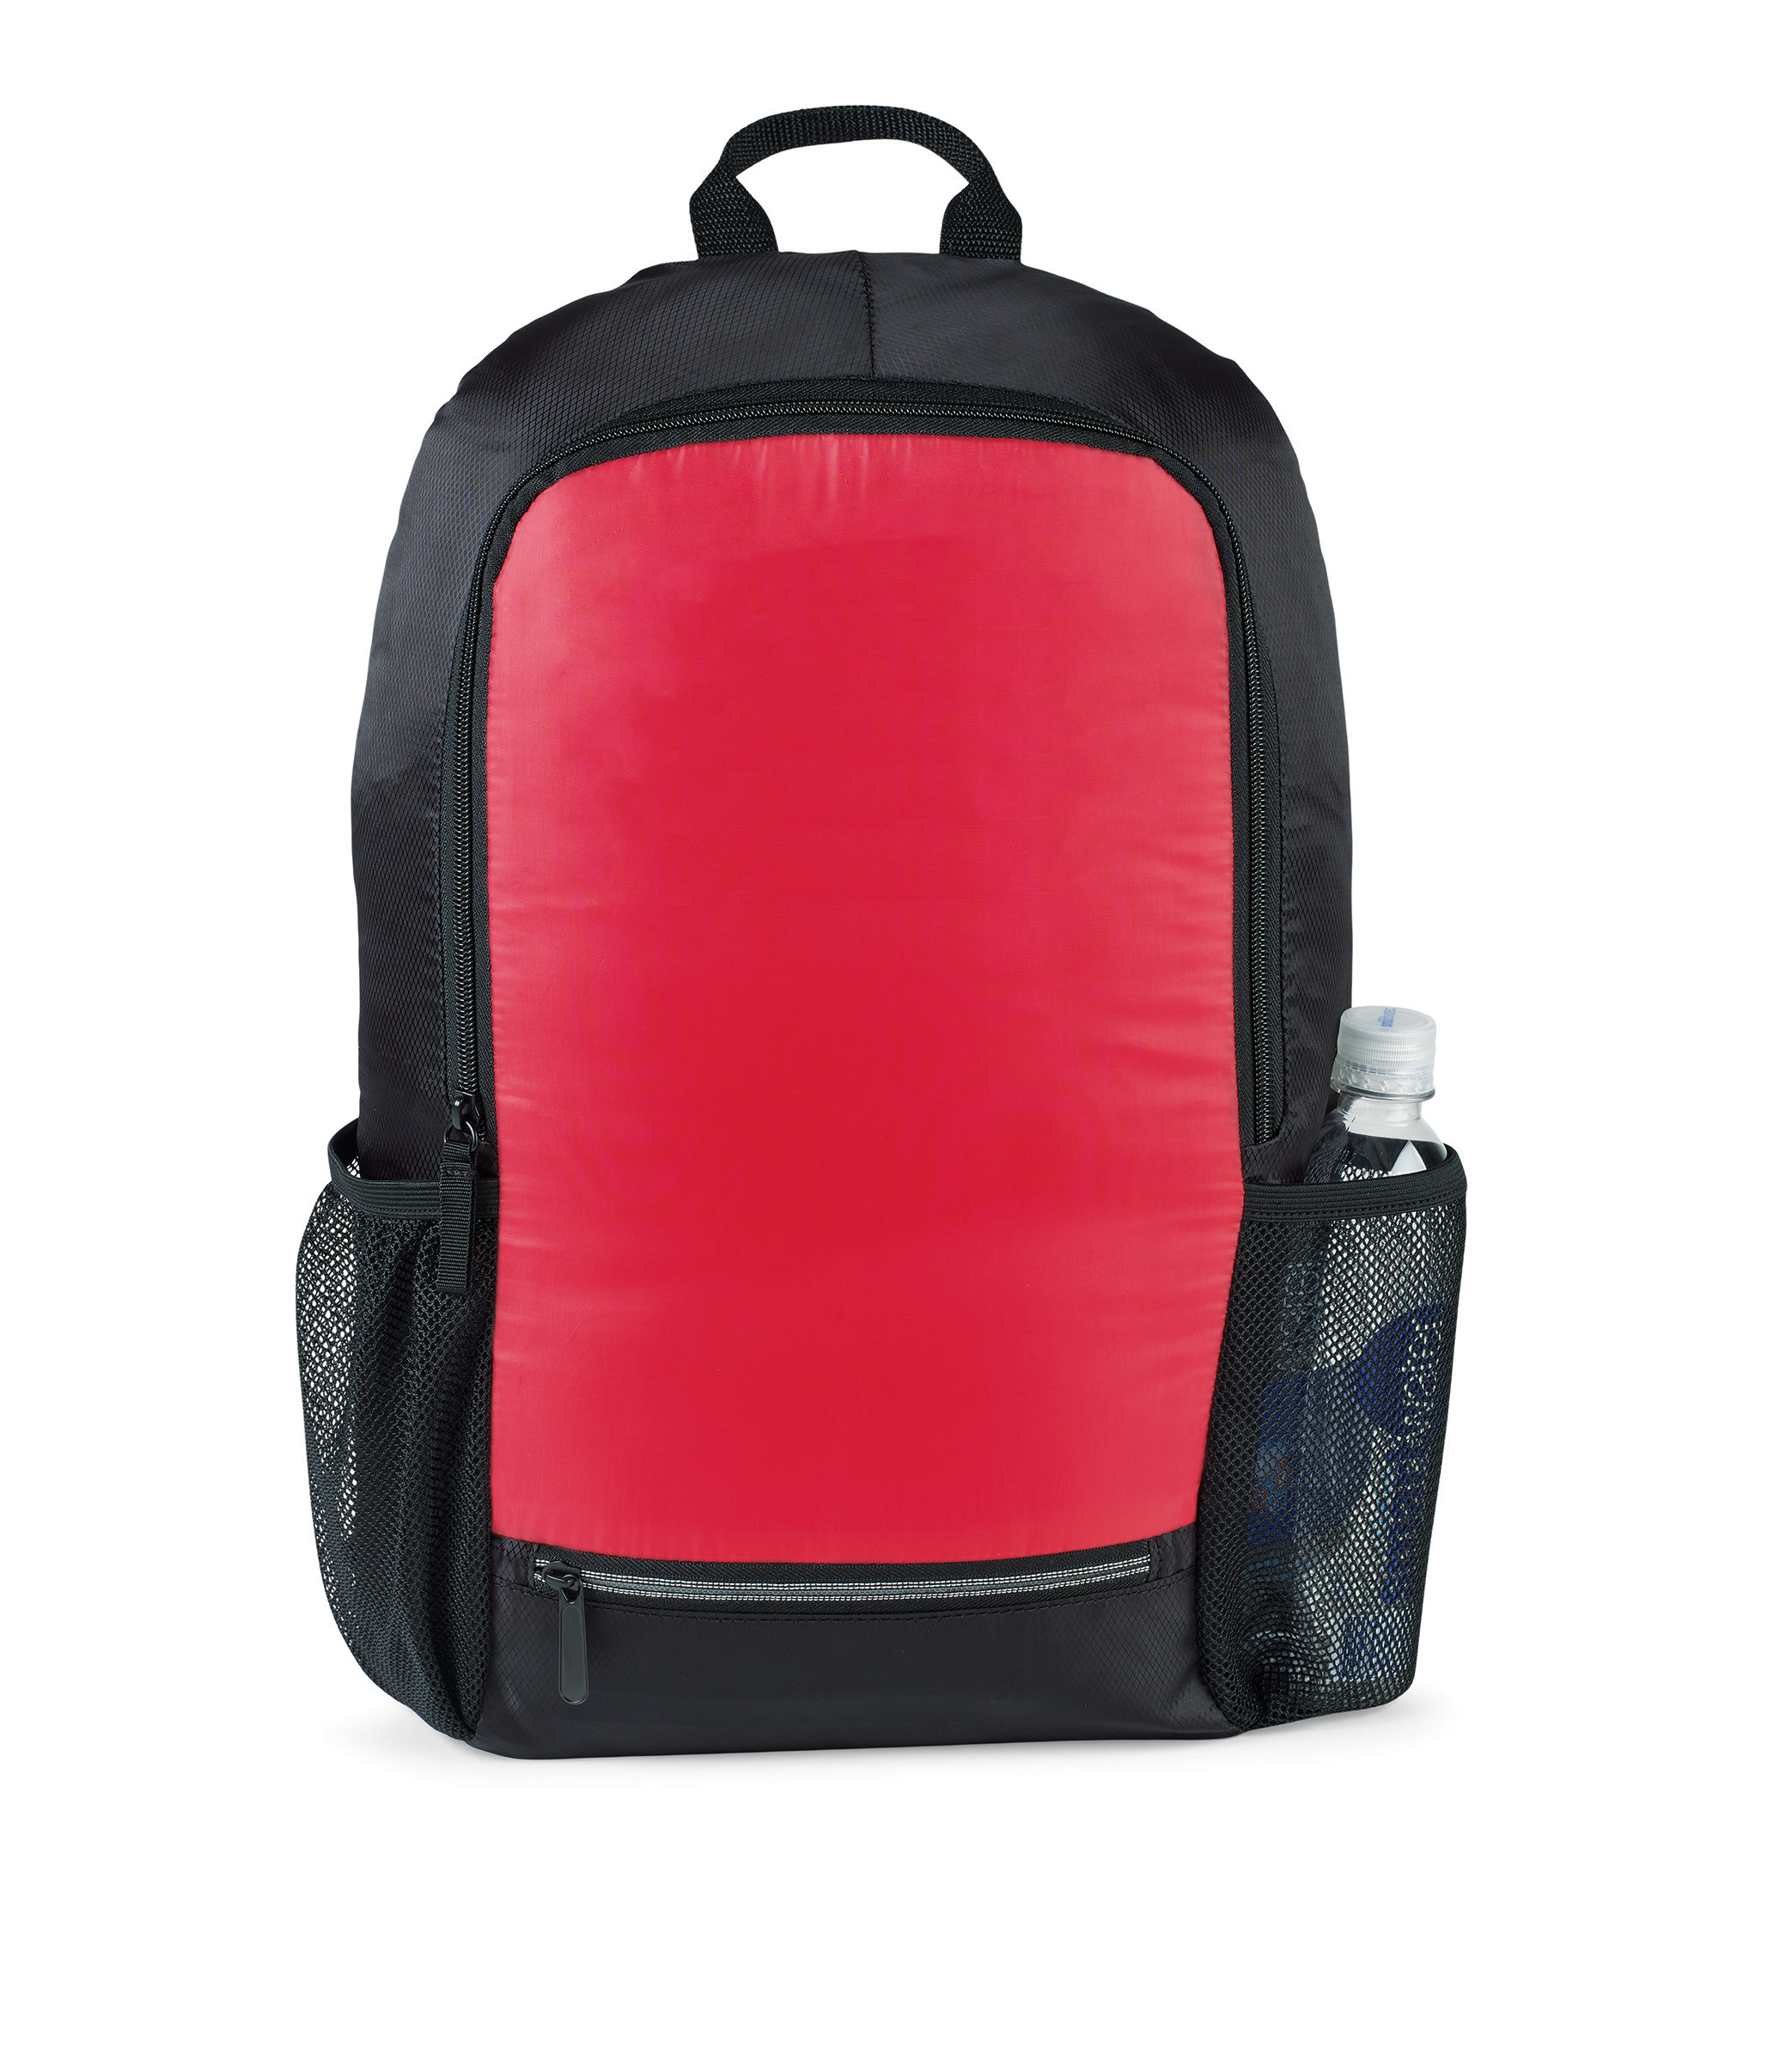 Gemline 5285 - Express Packable Backpack